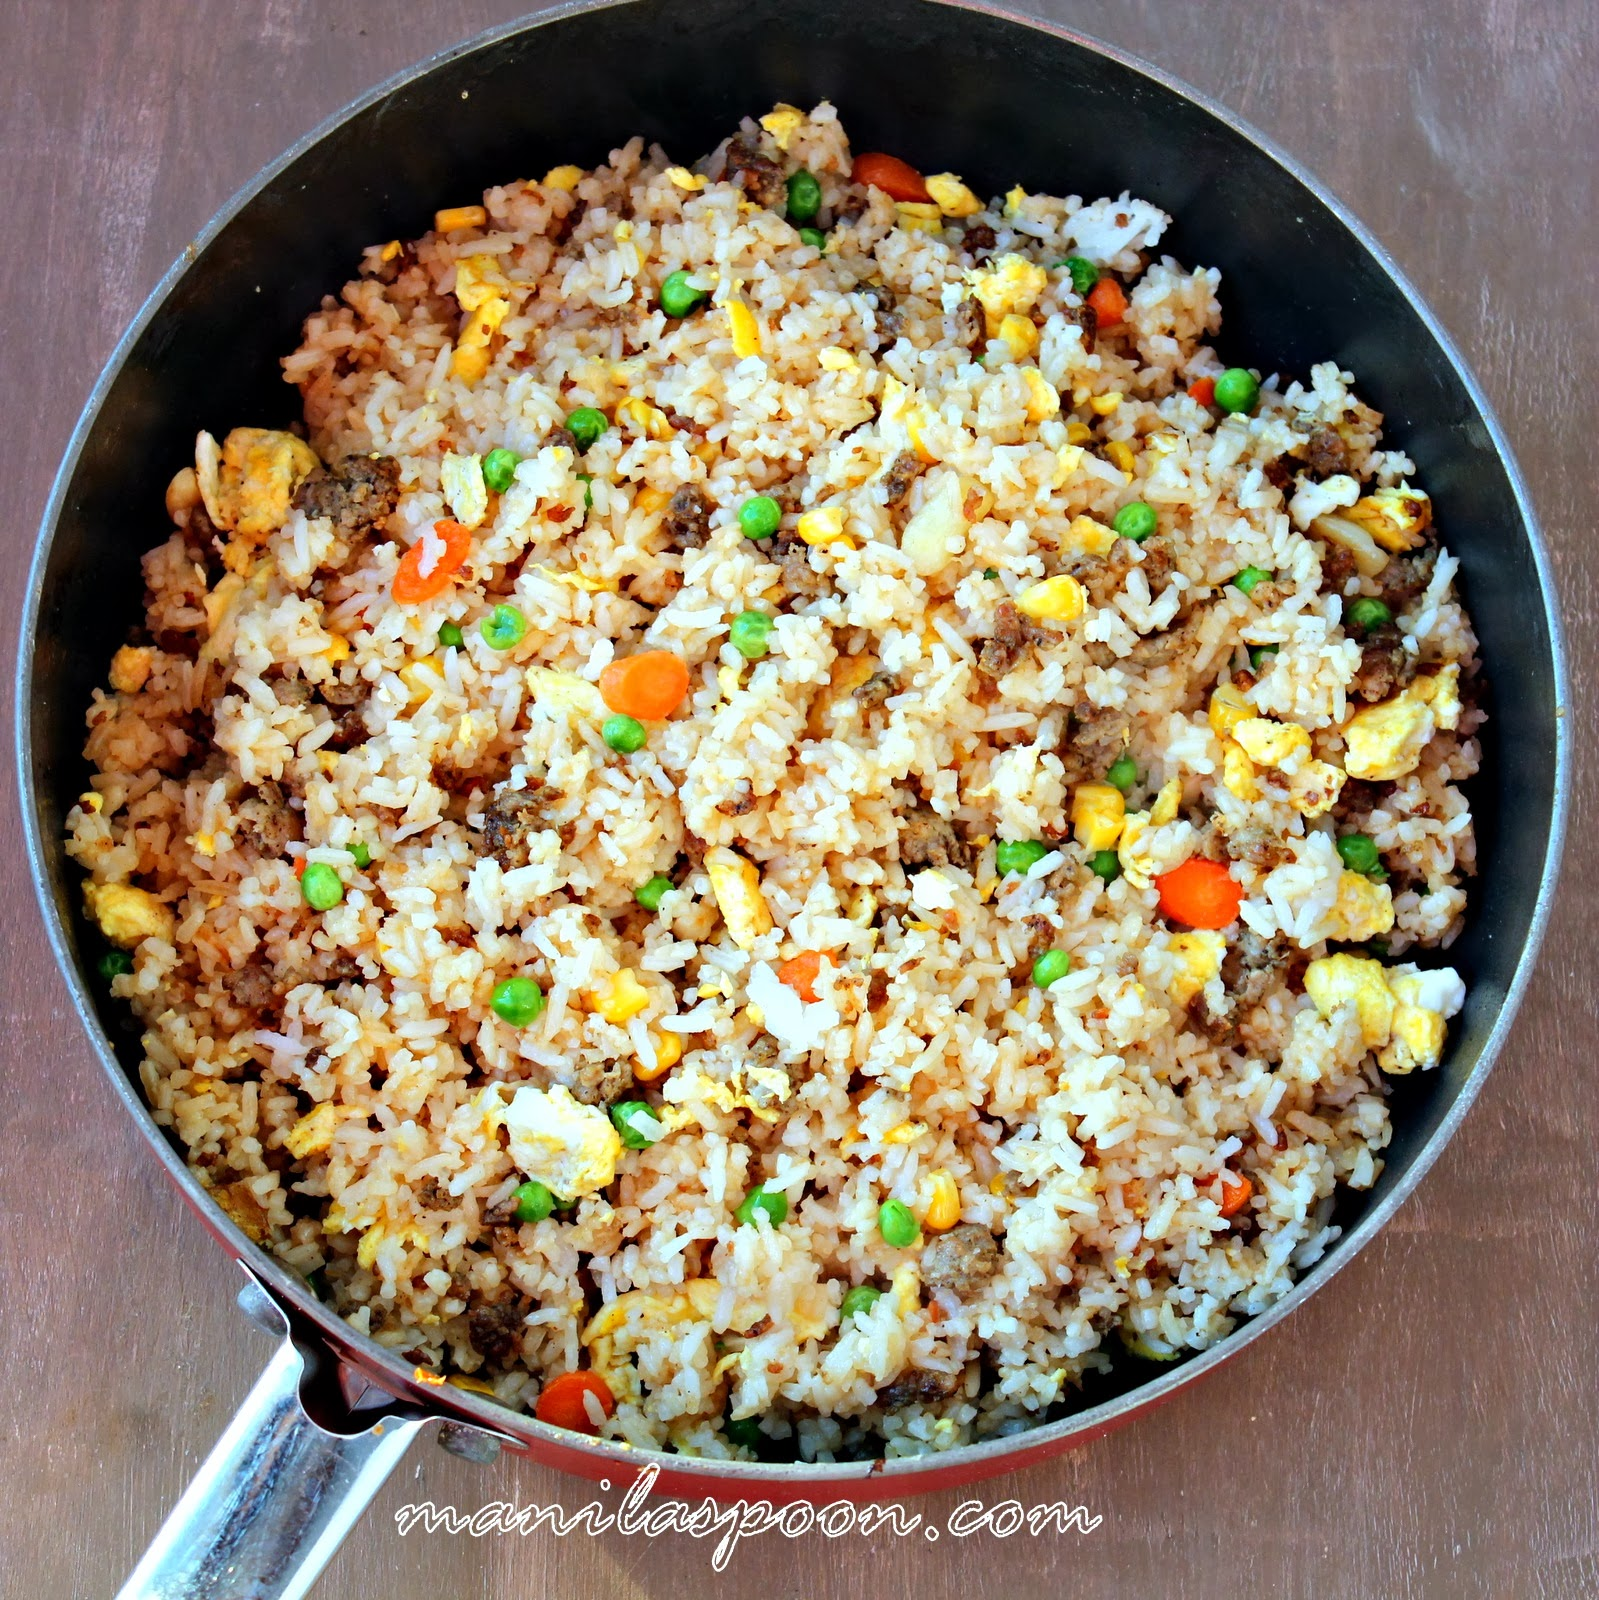 Sausage And Egg Fried Rice Manila Spoon